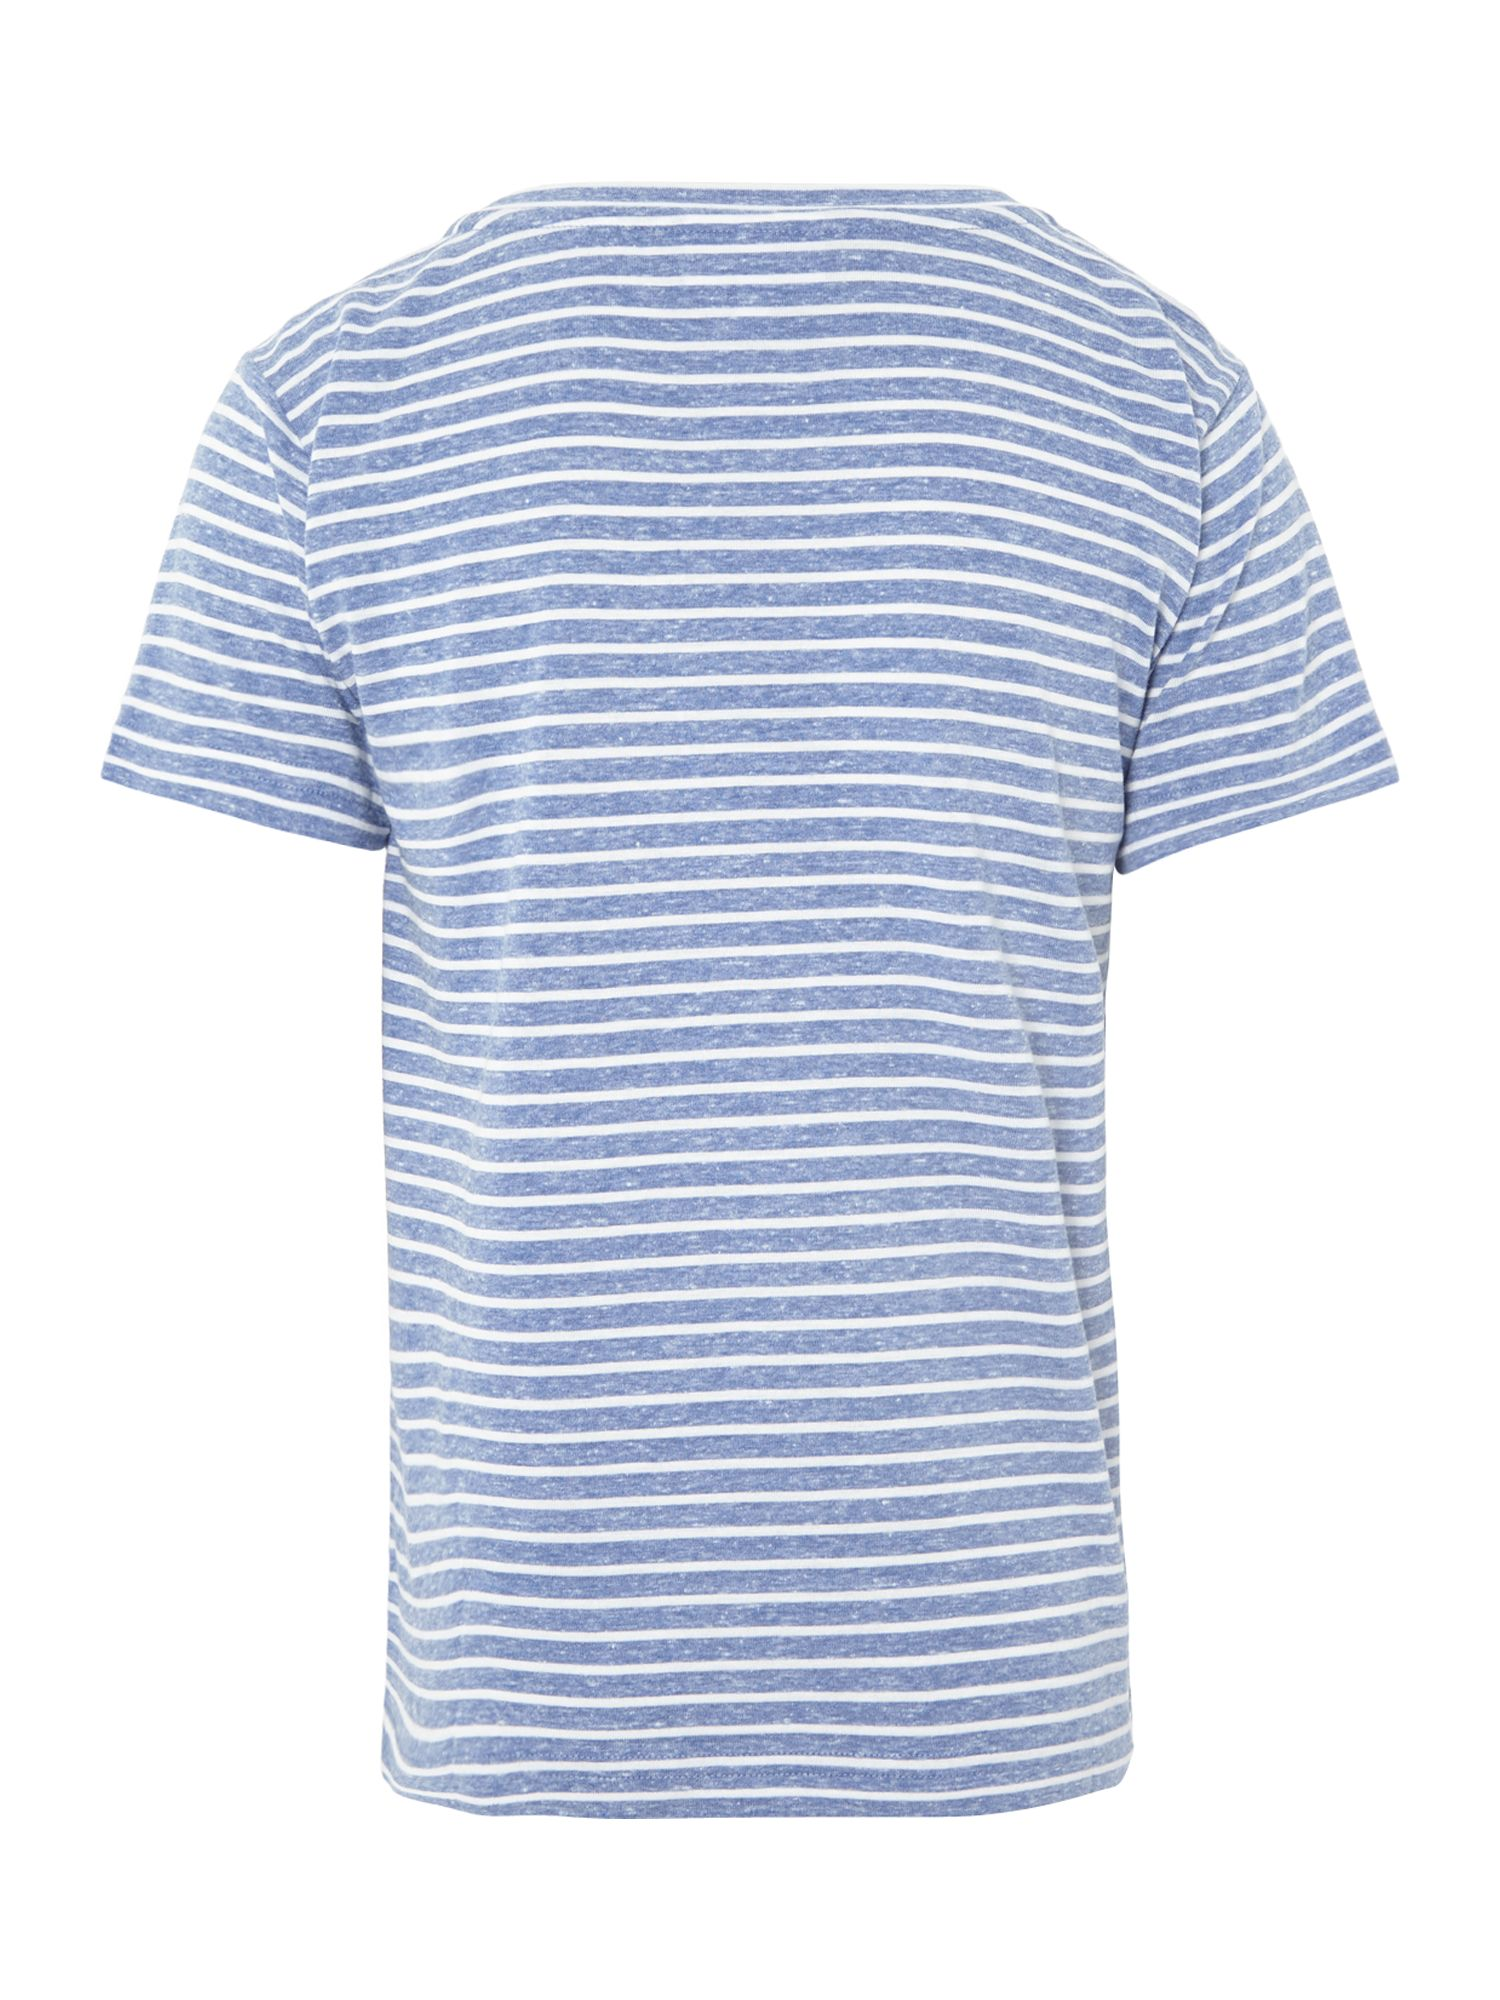 Boys slub stripe logo t-shirt